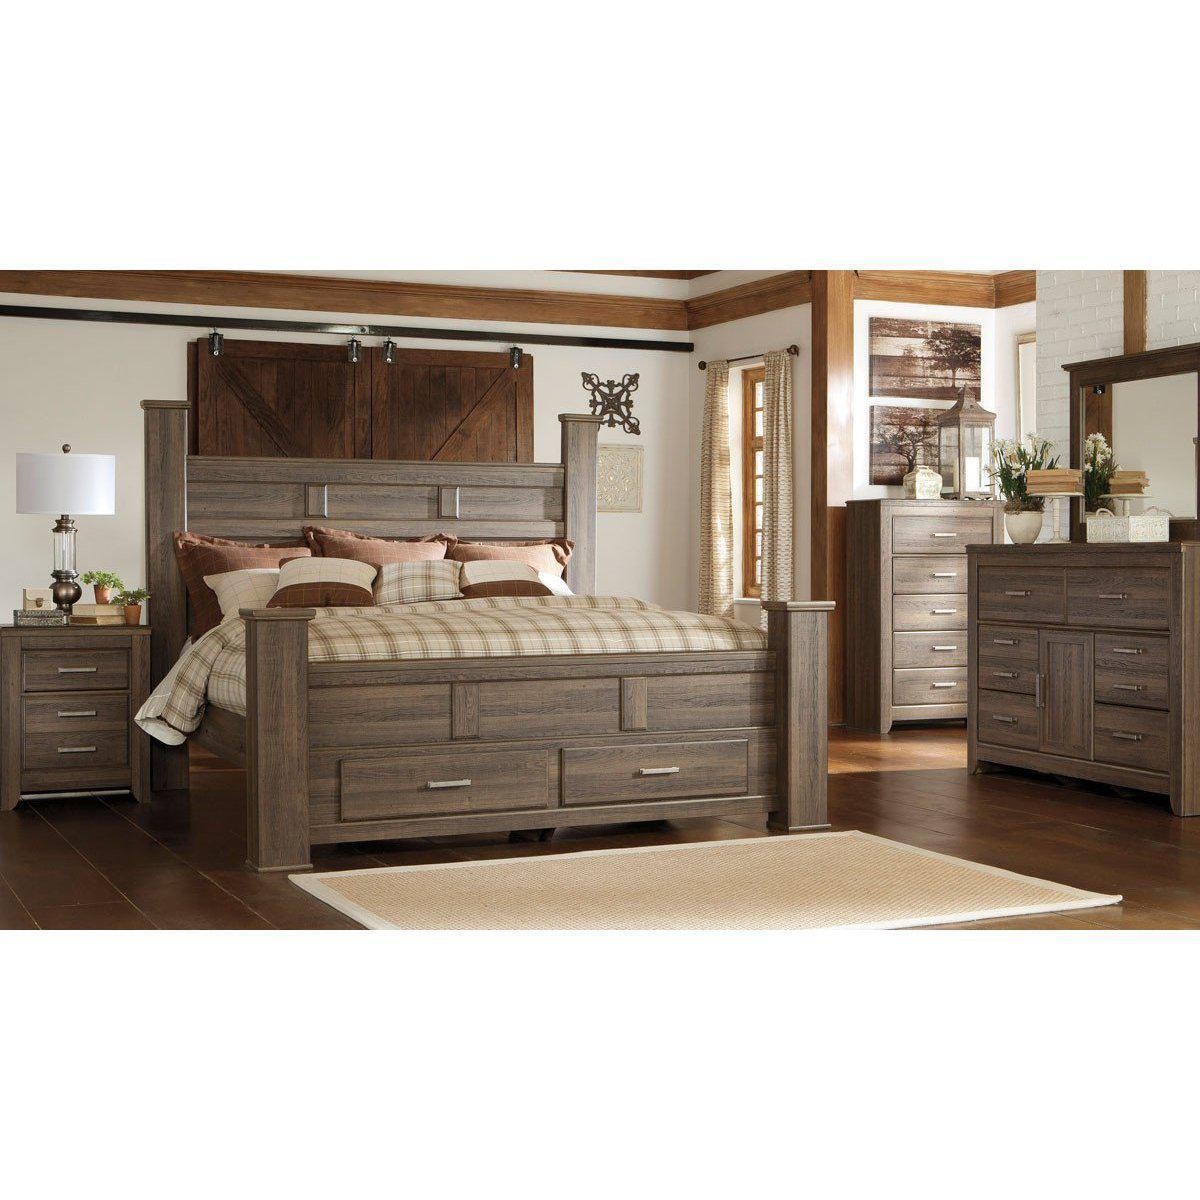 Jaxson Storage Bedroom Set